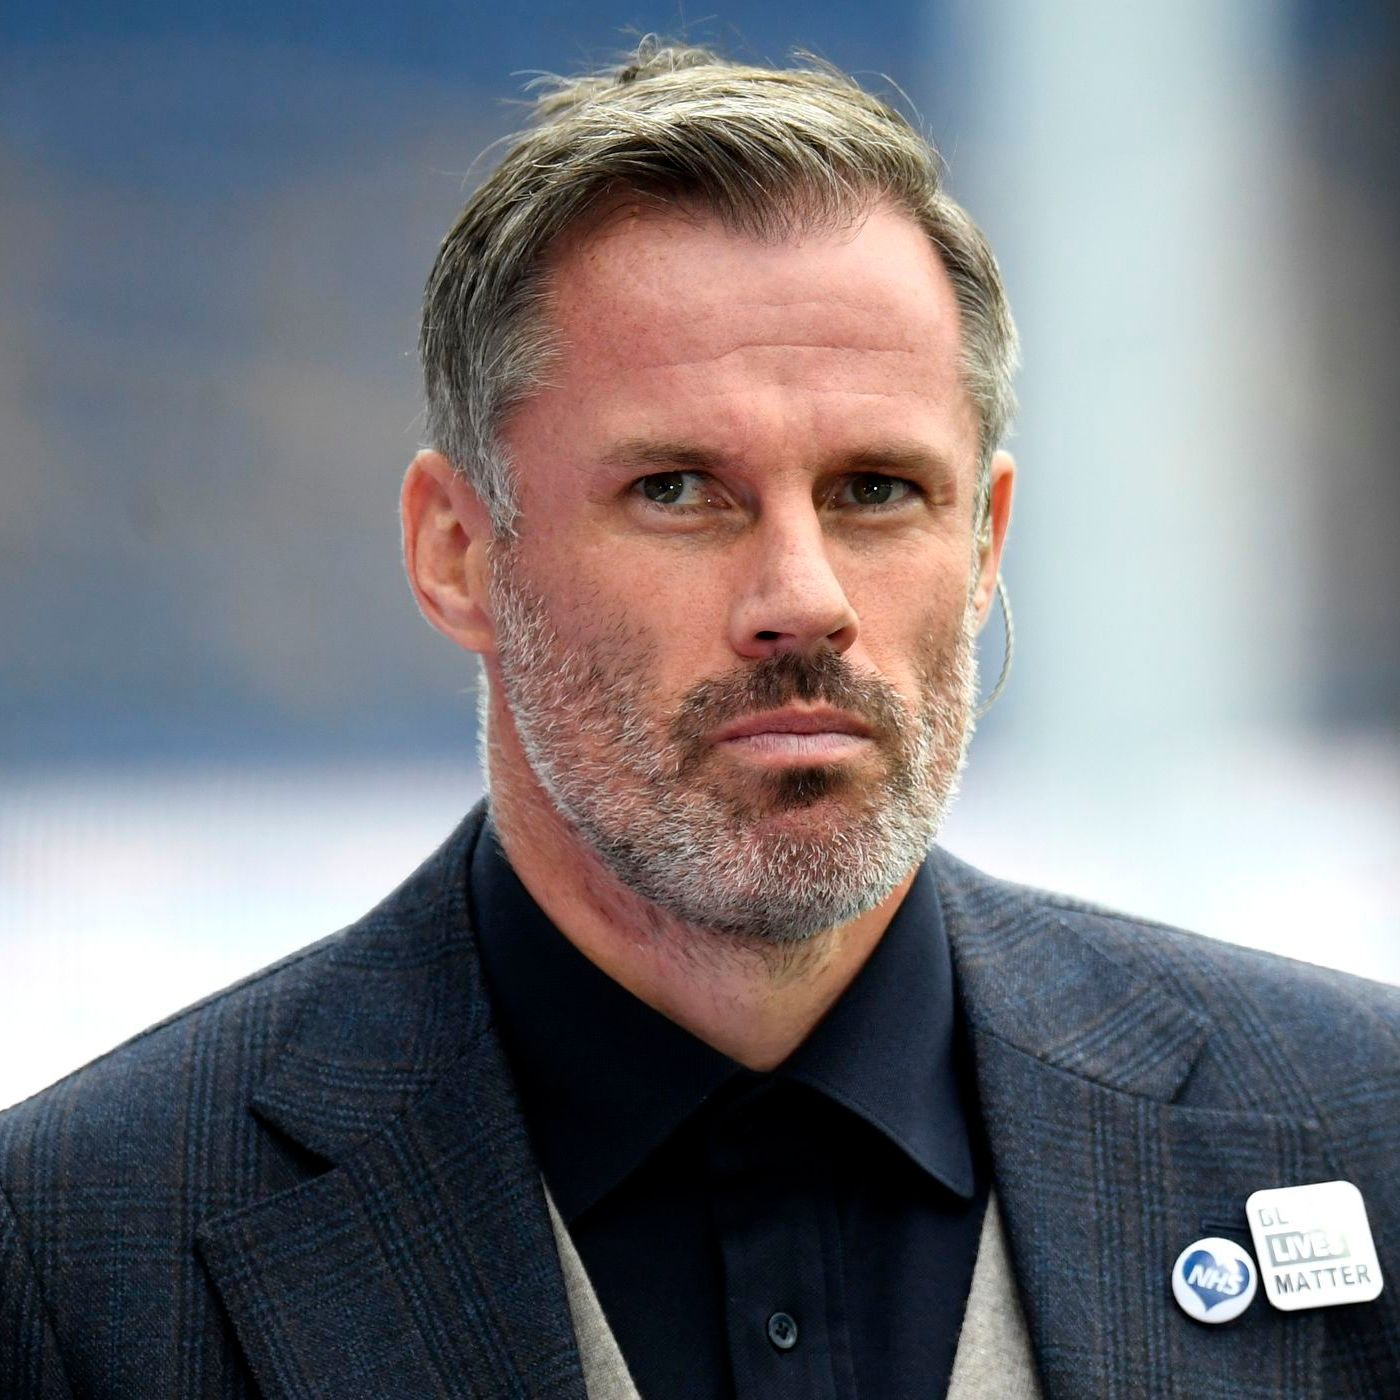 Jamie Carragher EXCLUSIVE: Carra on 10 years of 23 Foundation, how Jurgen Klopp took Reds to the top & what's needed to stay there